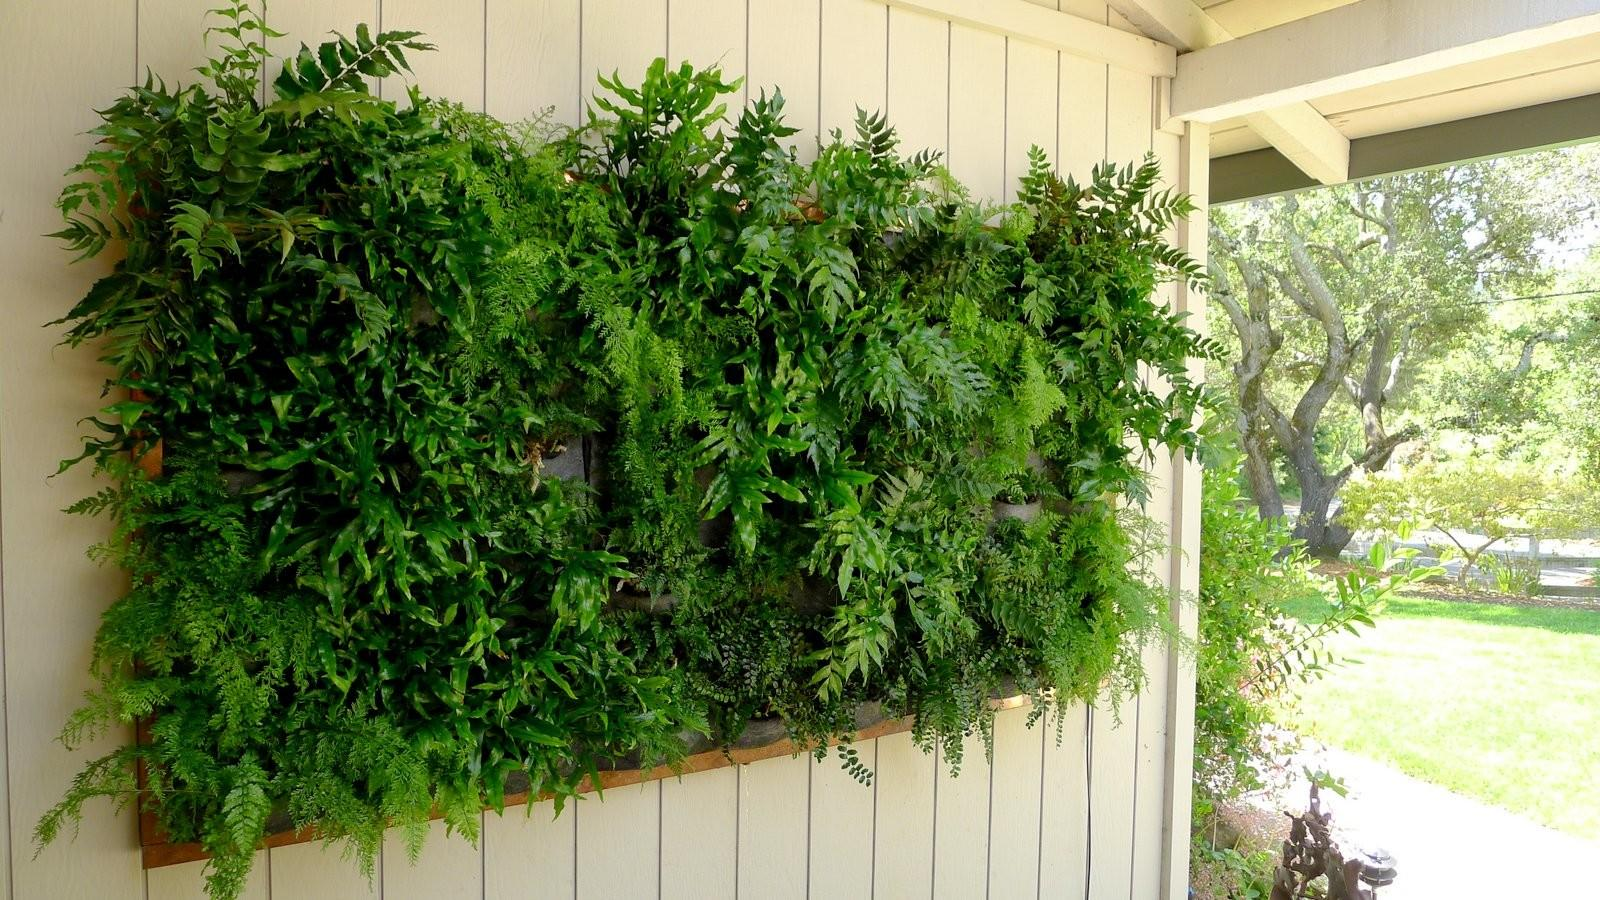 Plants Walls Vertical Garden Systems May 2012